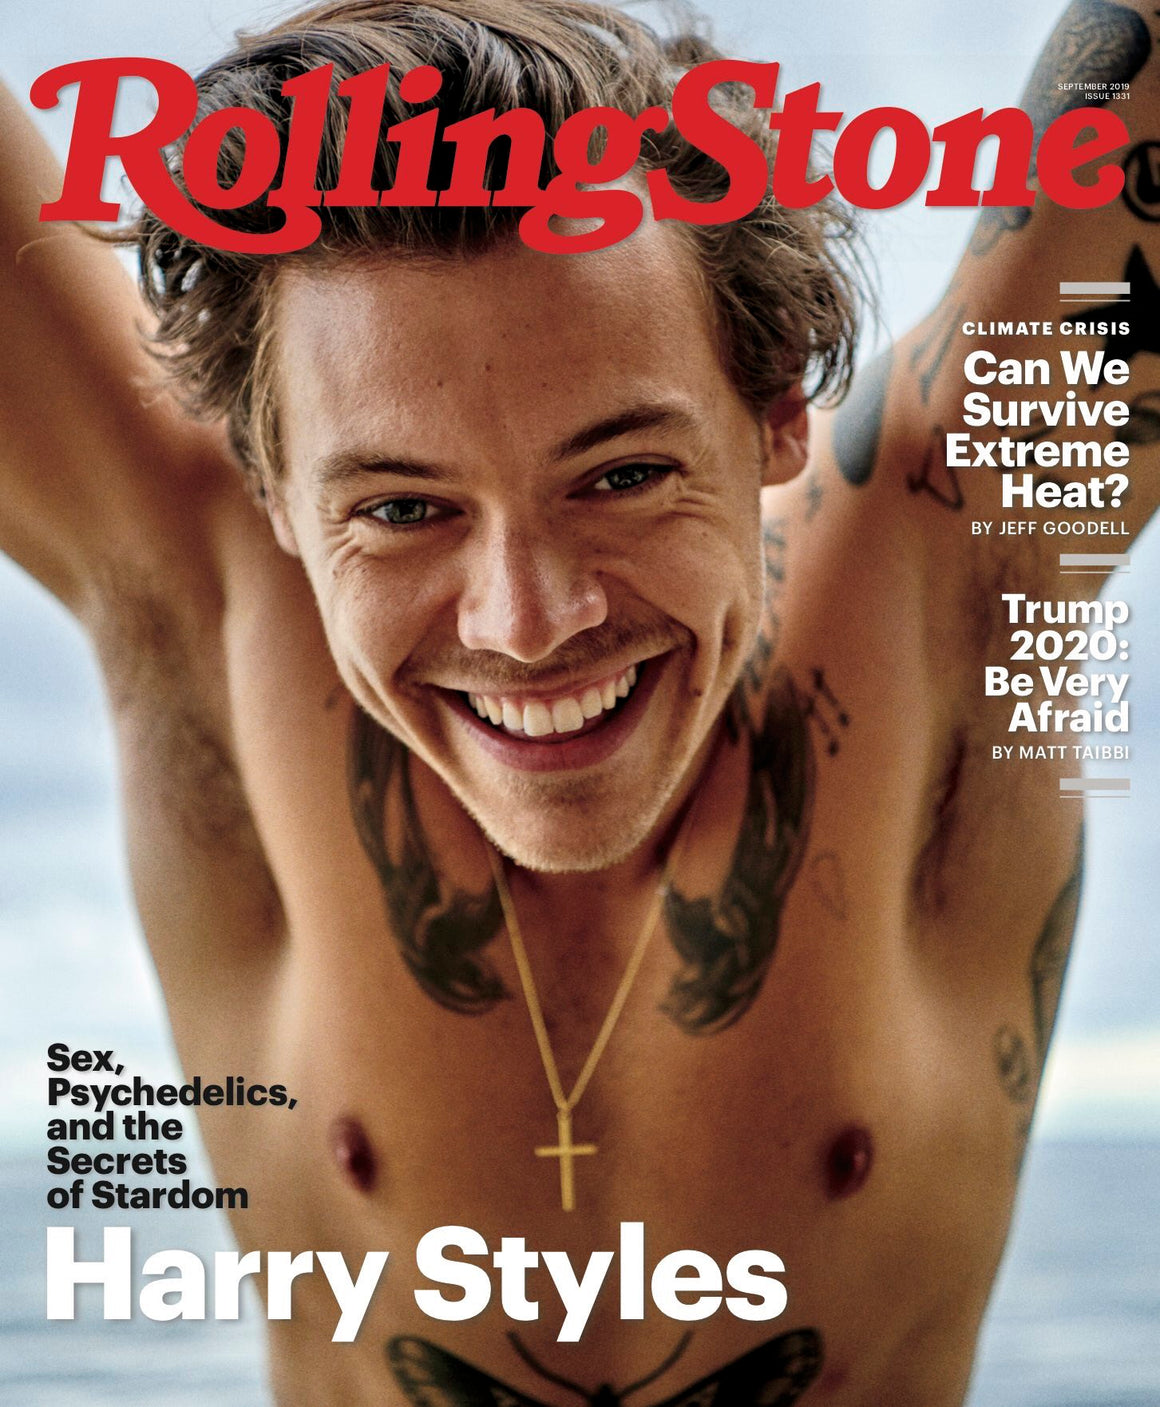 US ROLLING STONE MAGAZINE SEPTEMBER 2019: HARRY STYLES COVER EDITION ONE DIRECTION